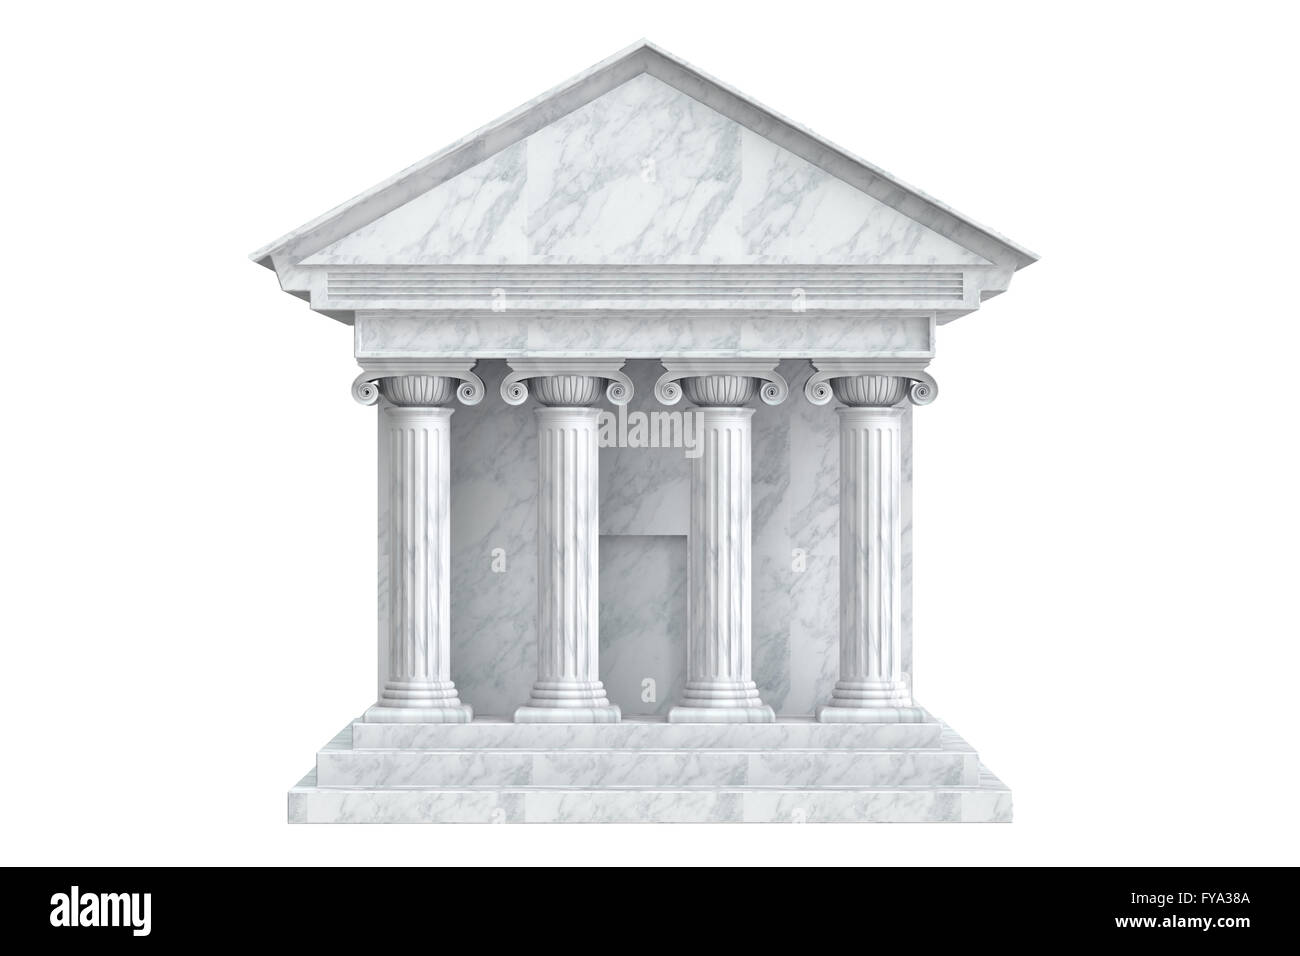 Ancient Colonnade Building, 3D rendering - Stock Image